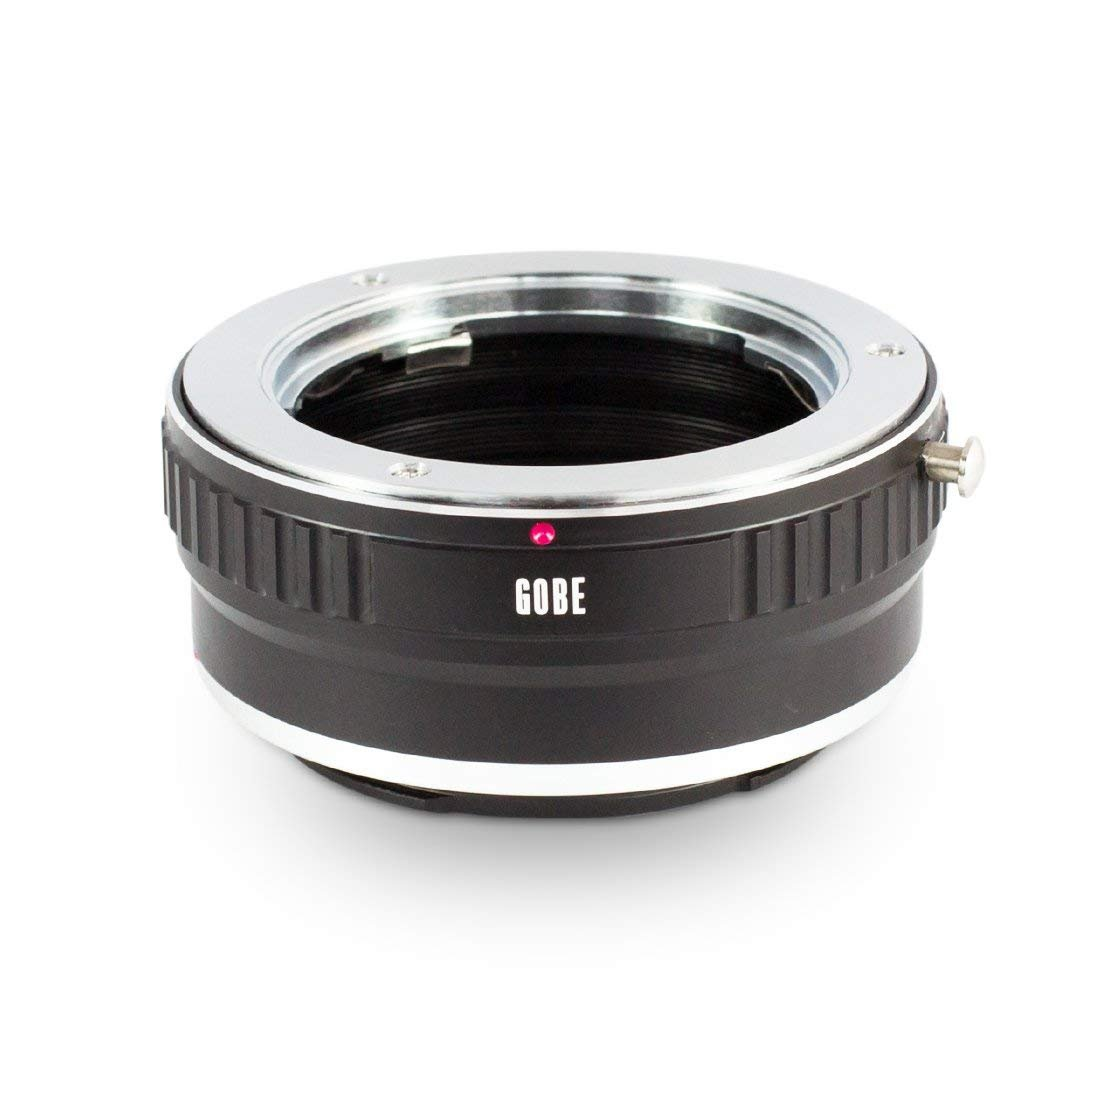 Gobe Lens Mount Adapter Compatible with M42 Screw Lens and Fujifilm X Camera Body